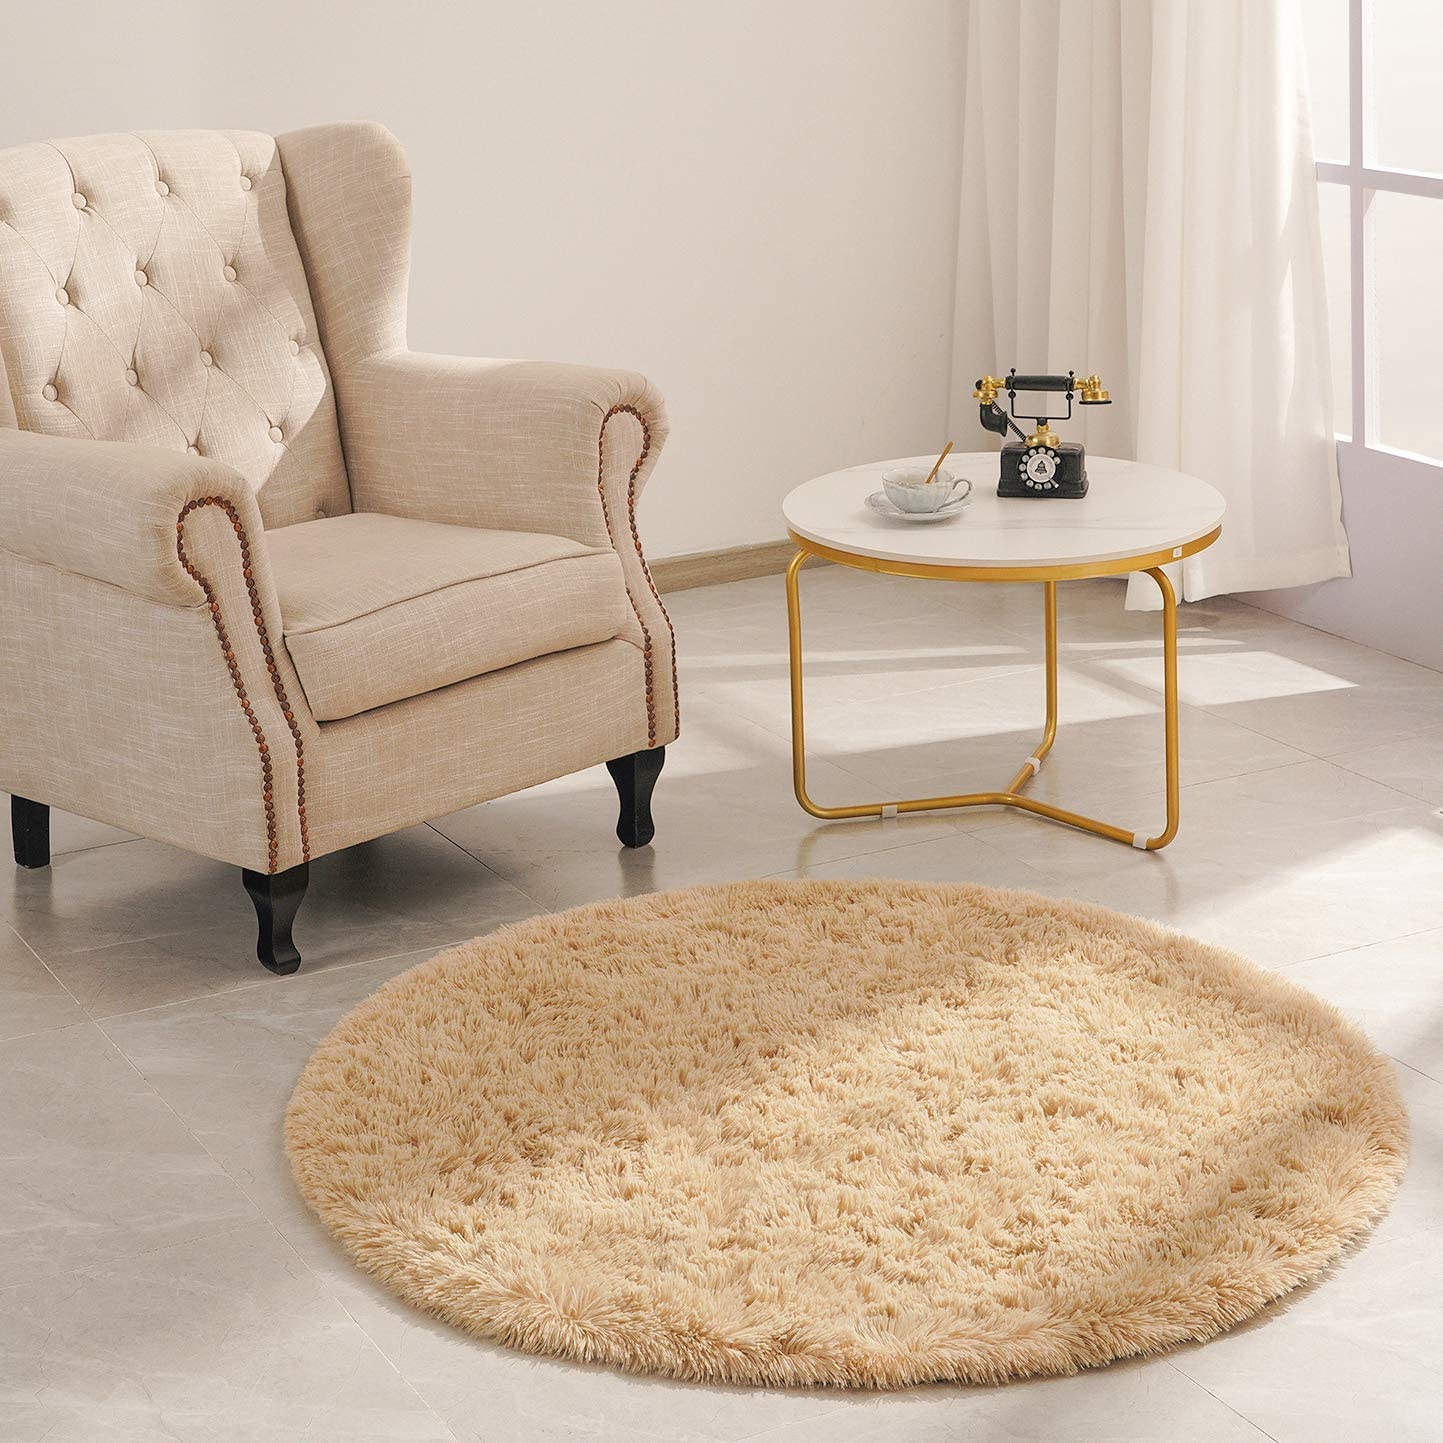 Goideal Round Cheap Fluffy Area National uniform free shipping Rug for Bedroom Light Shaggy Tan